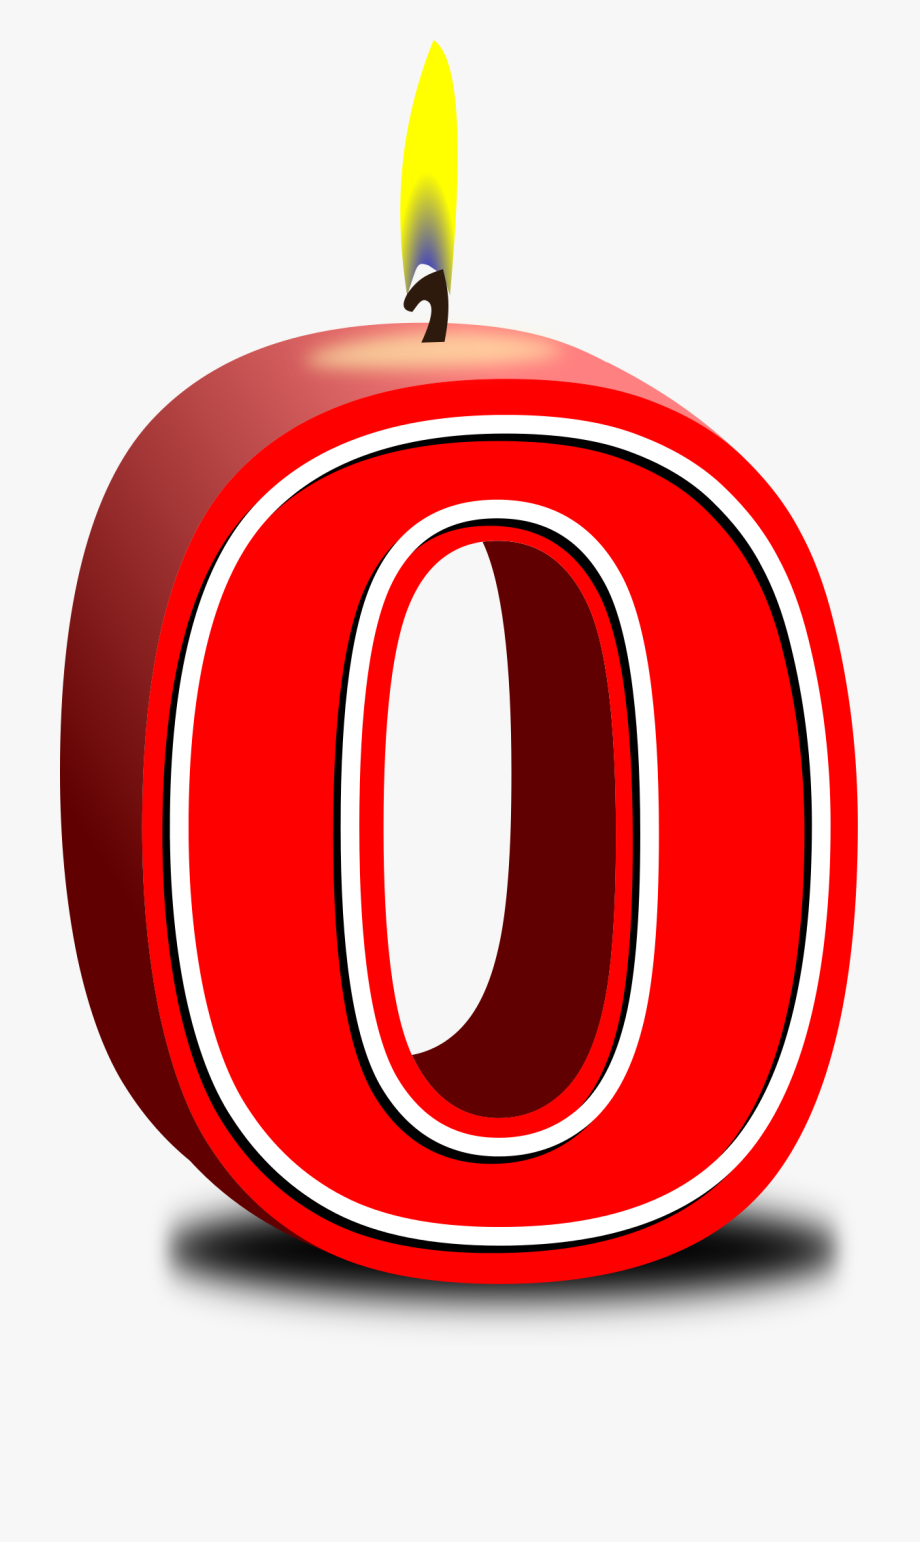 Number zero red candle. Apple clipart birthday